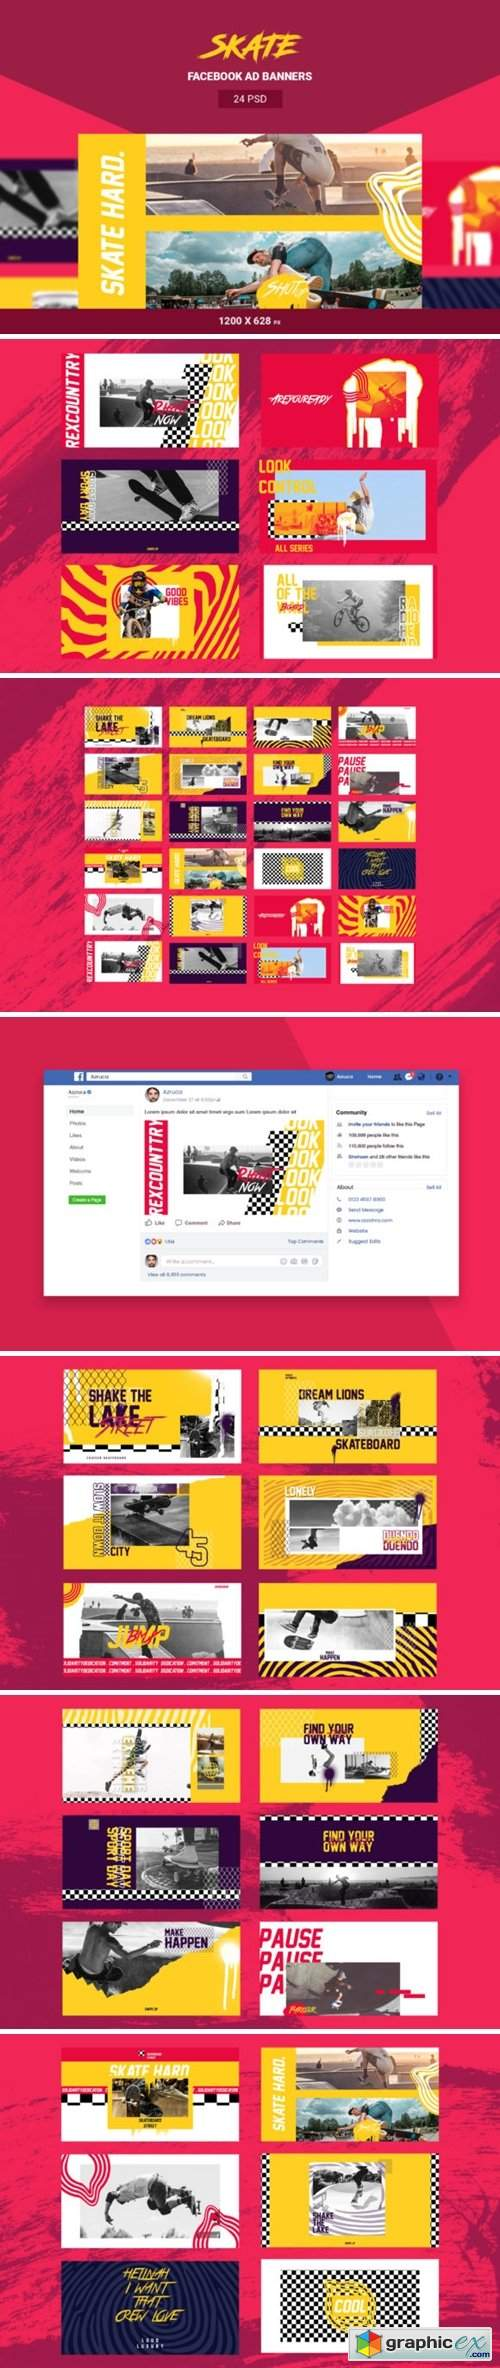 Skate Facebook Ad Banners